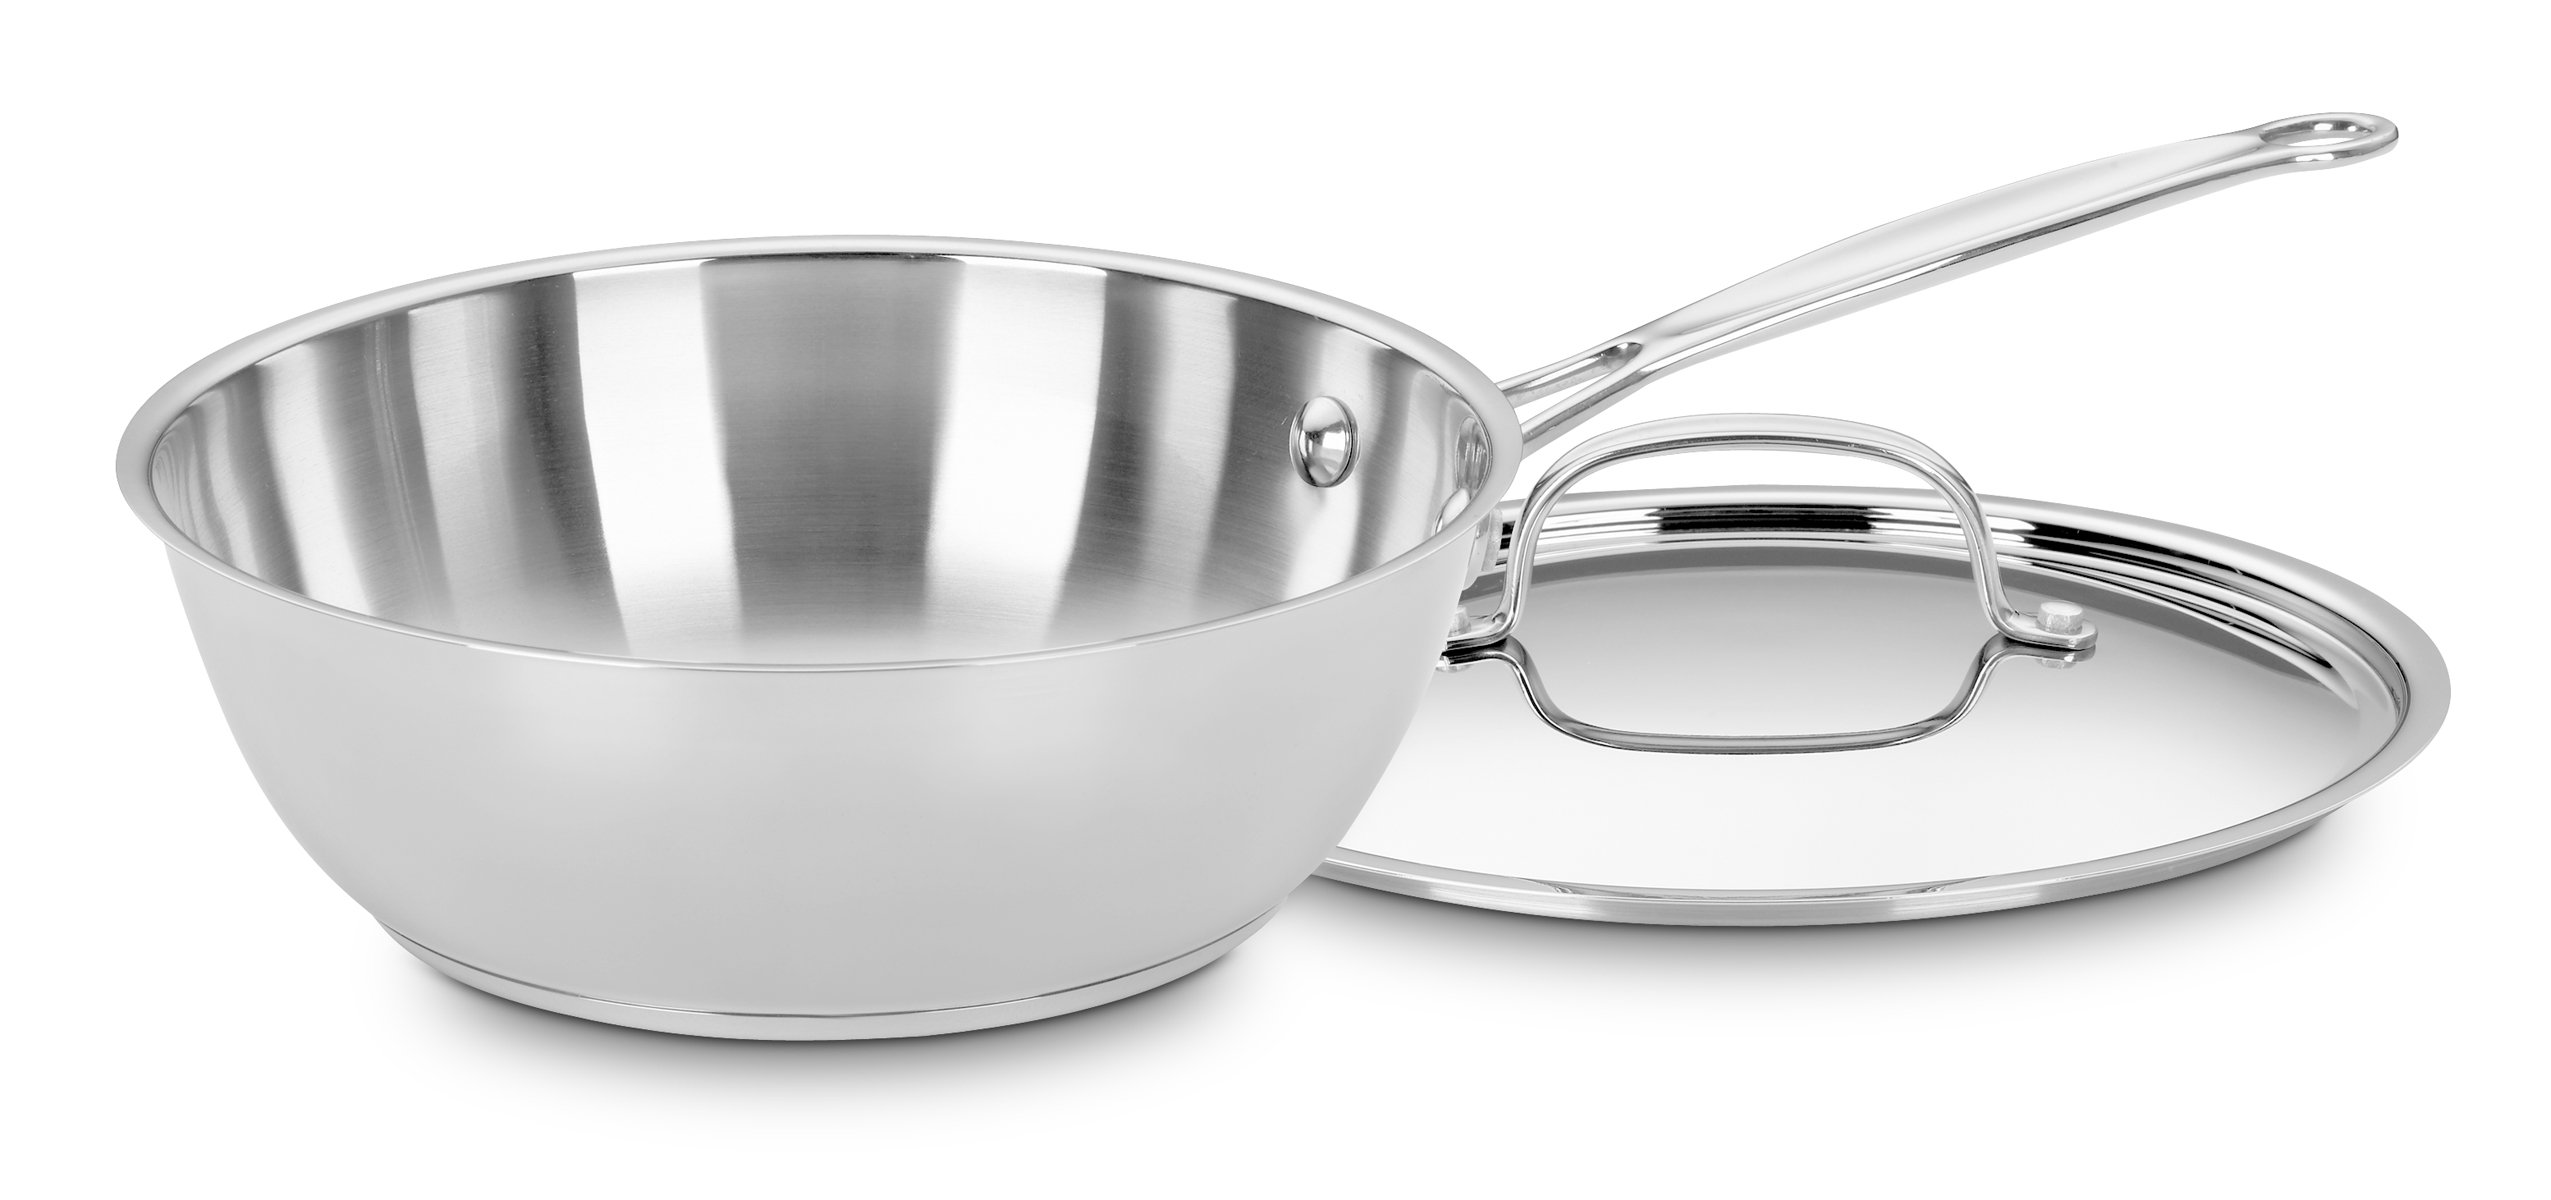 Cuisinart 735-24 Chef's Classic Stainless 3-Quart Chef's Pan with Cover by Cuisinart